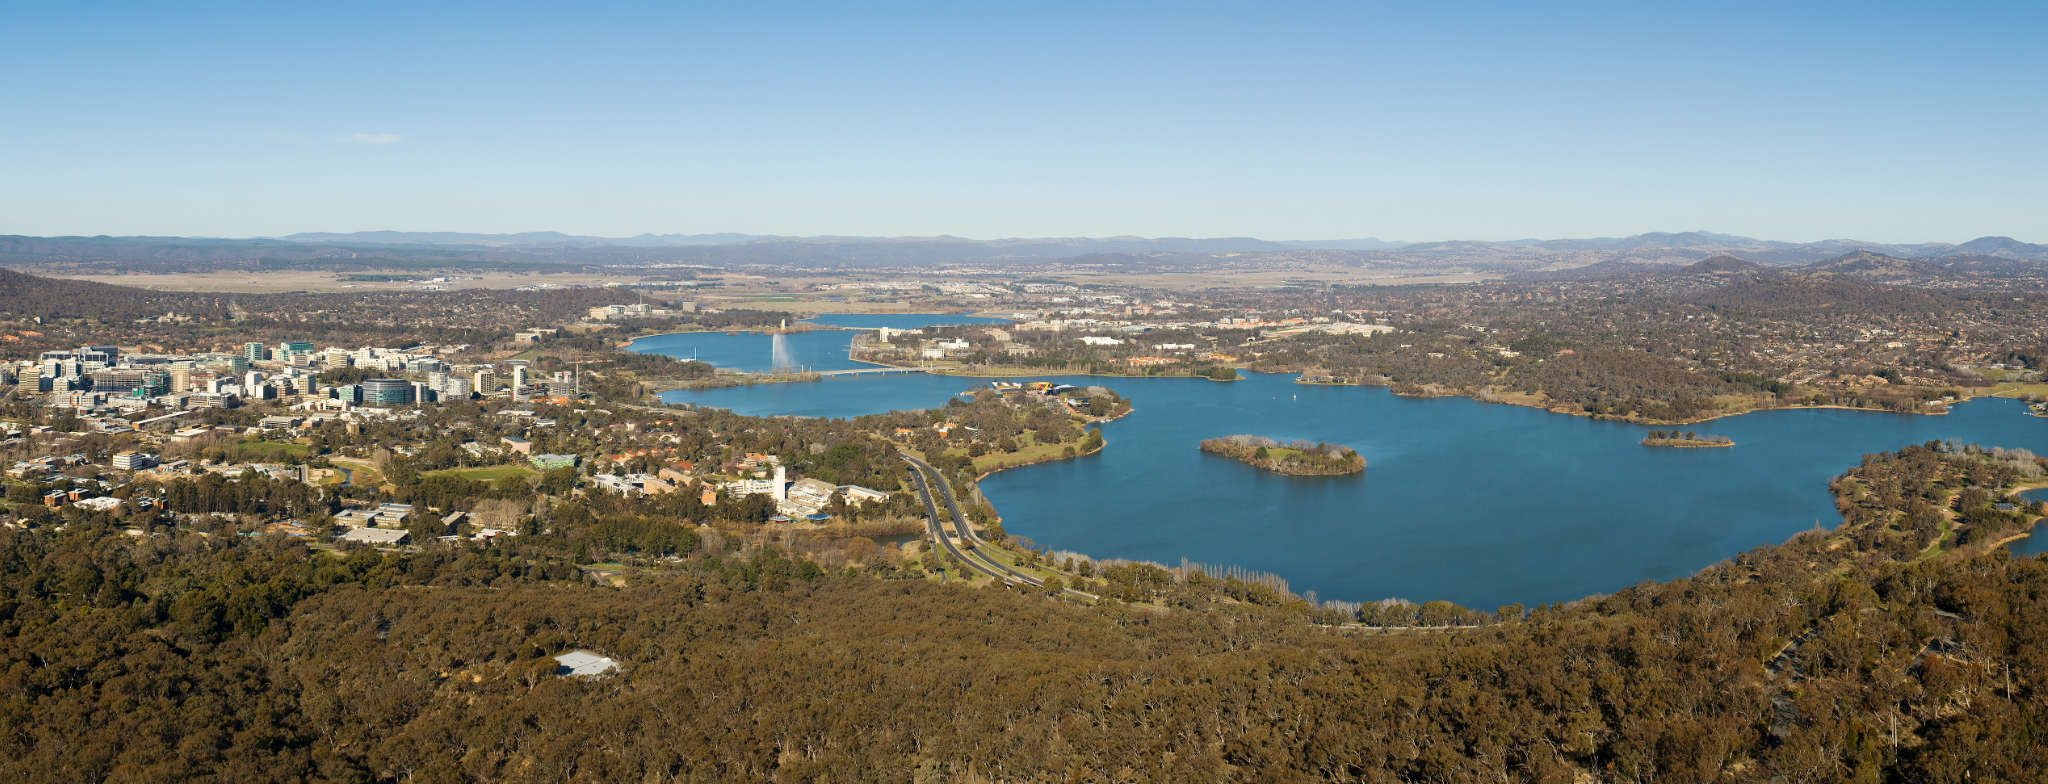 Canberra, foto door JJ Harrison (Wiki media)